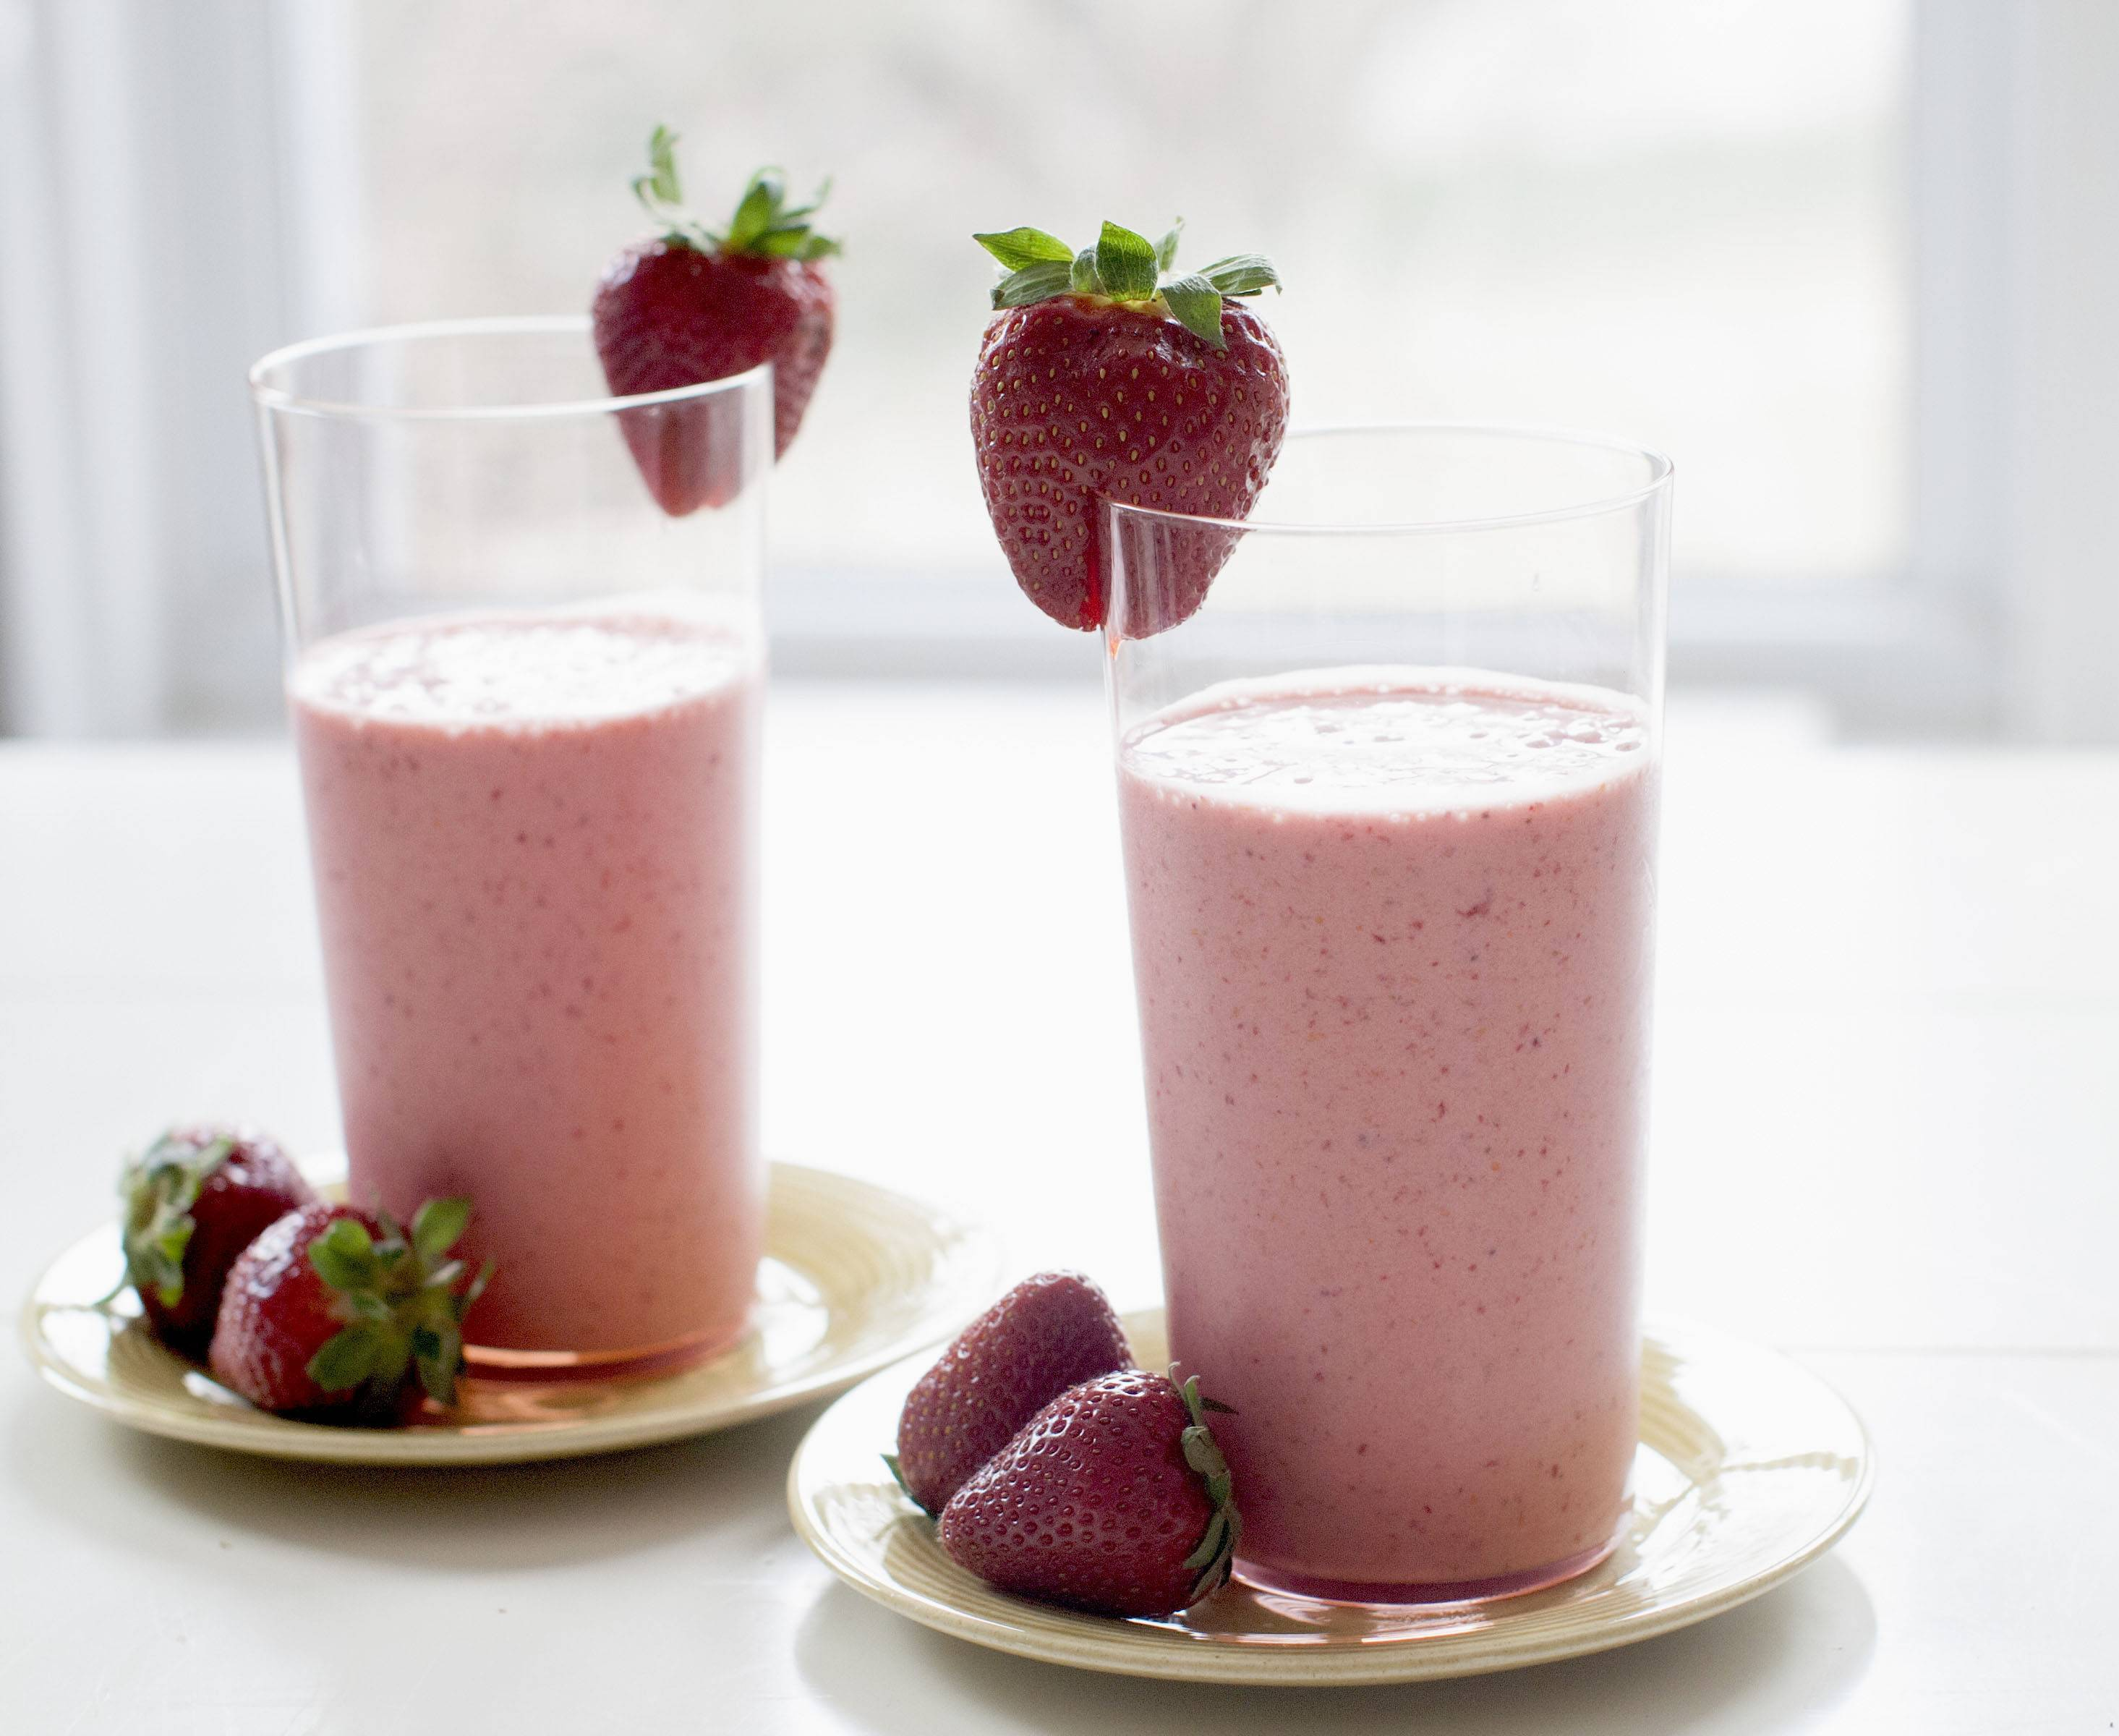 Stawberry Elderflower Frappe